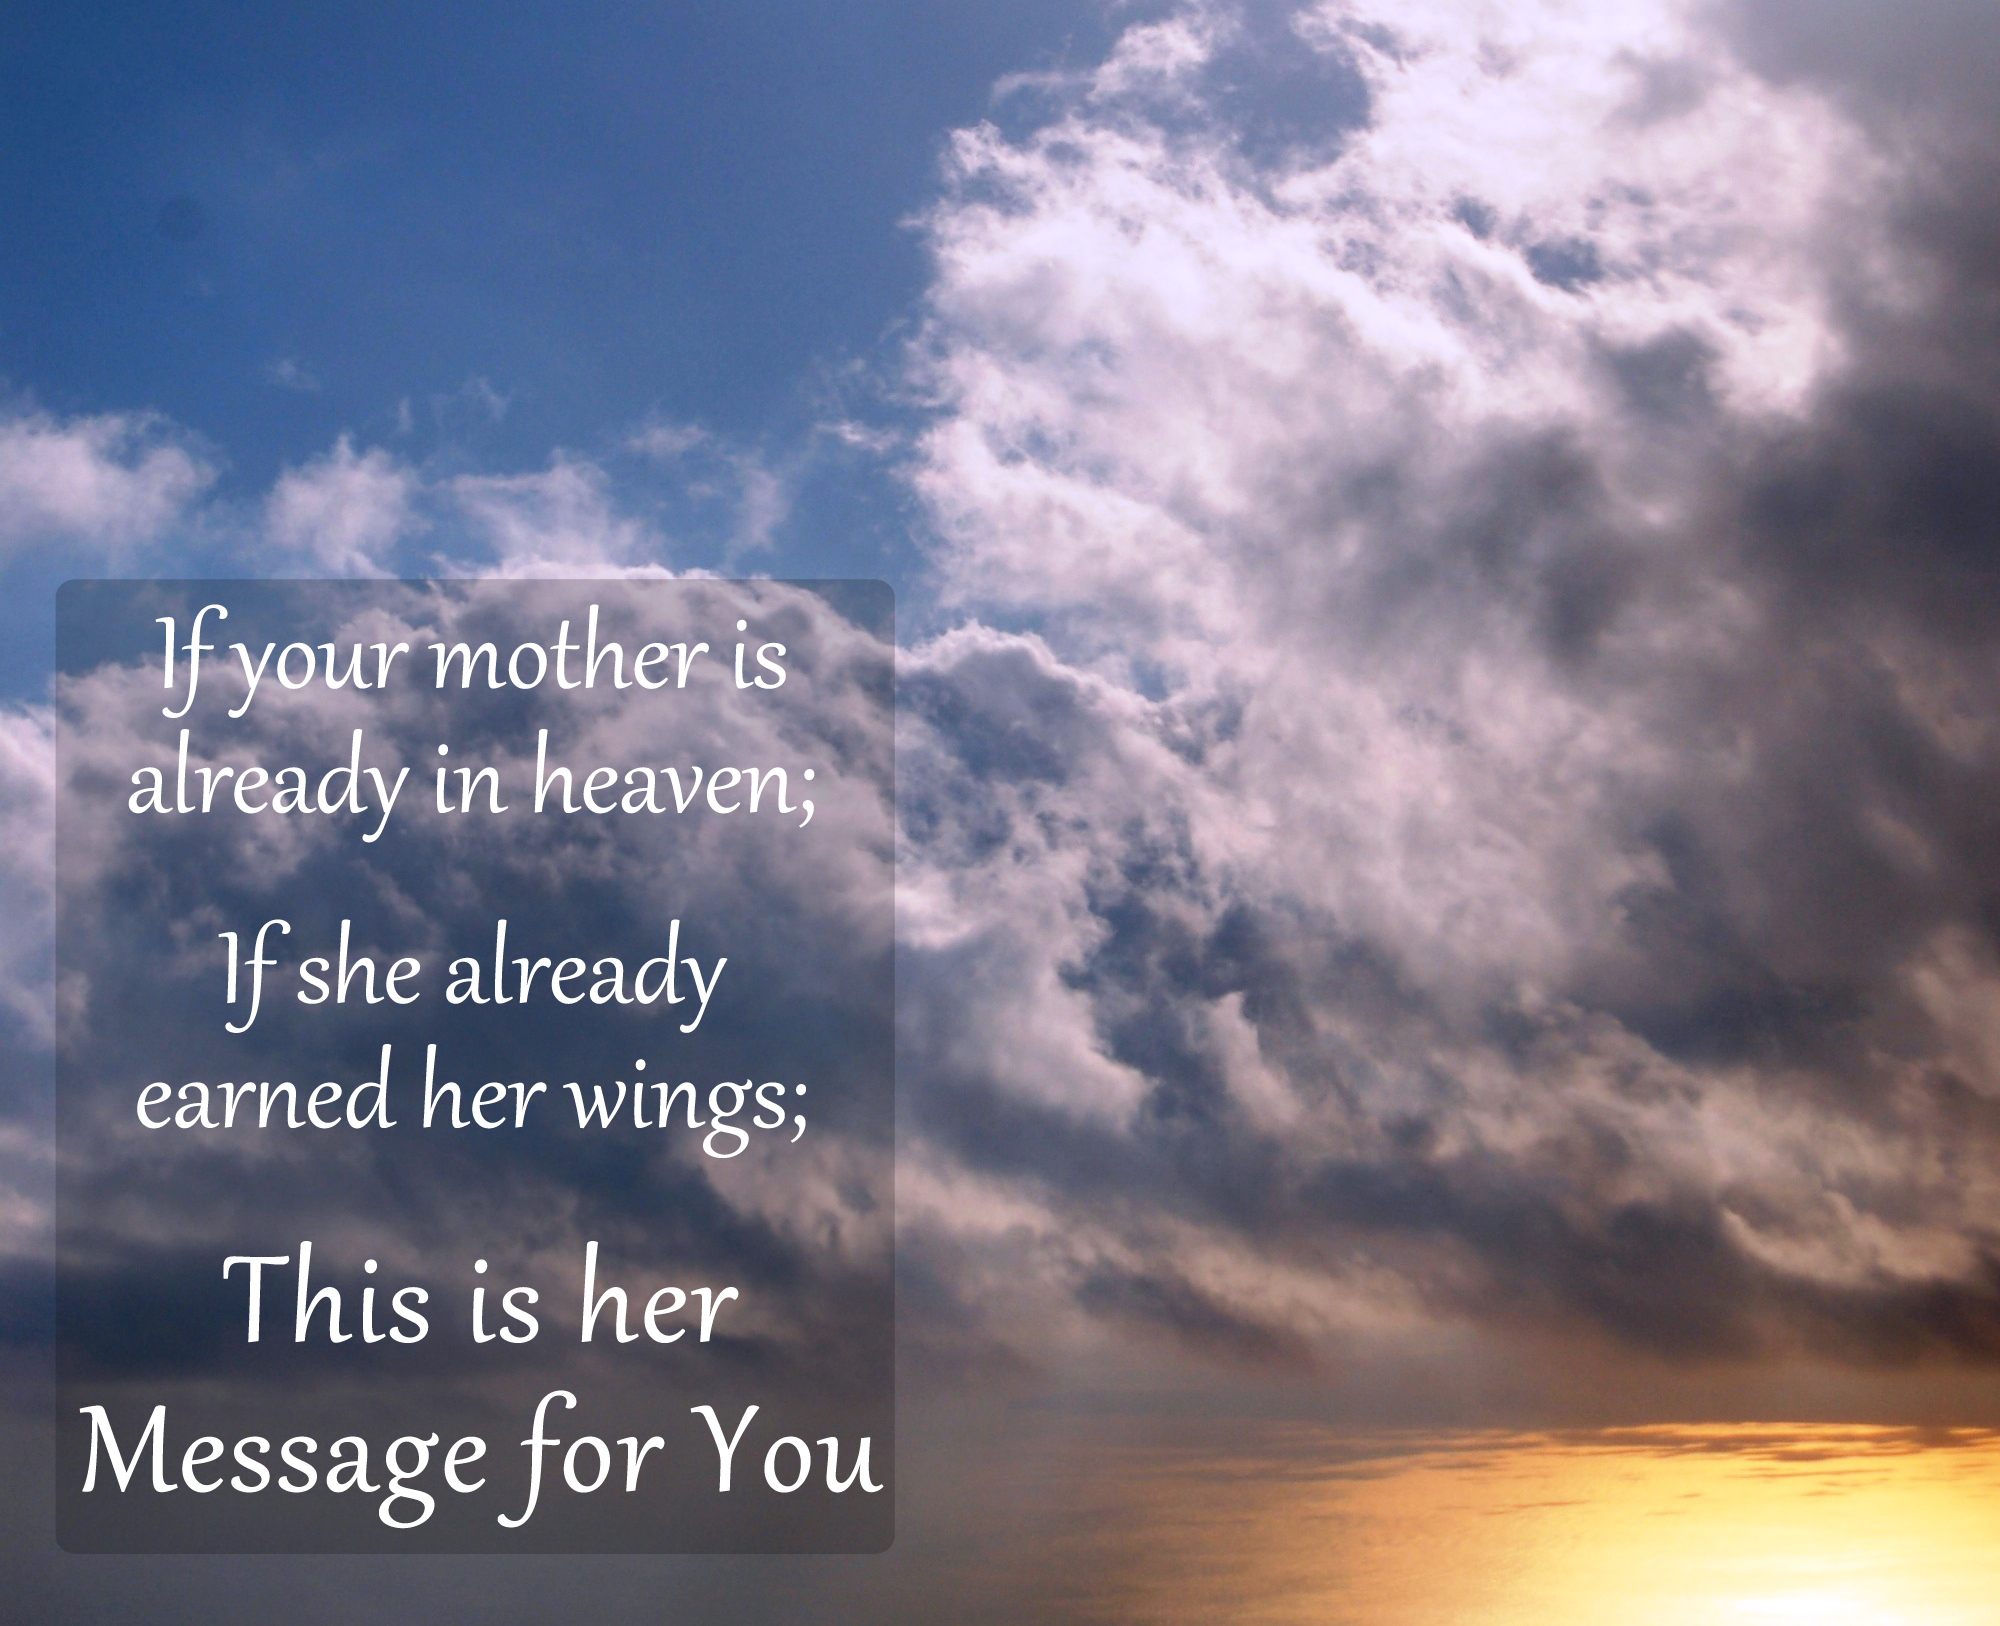 Missing My Mom In Heaven Quotes Cool John Msimmons Your Mother's Day Message From Your Angel Mom In